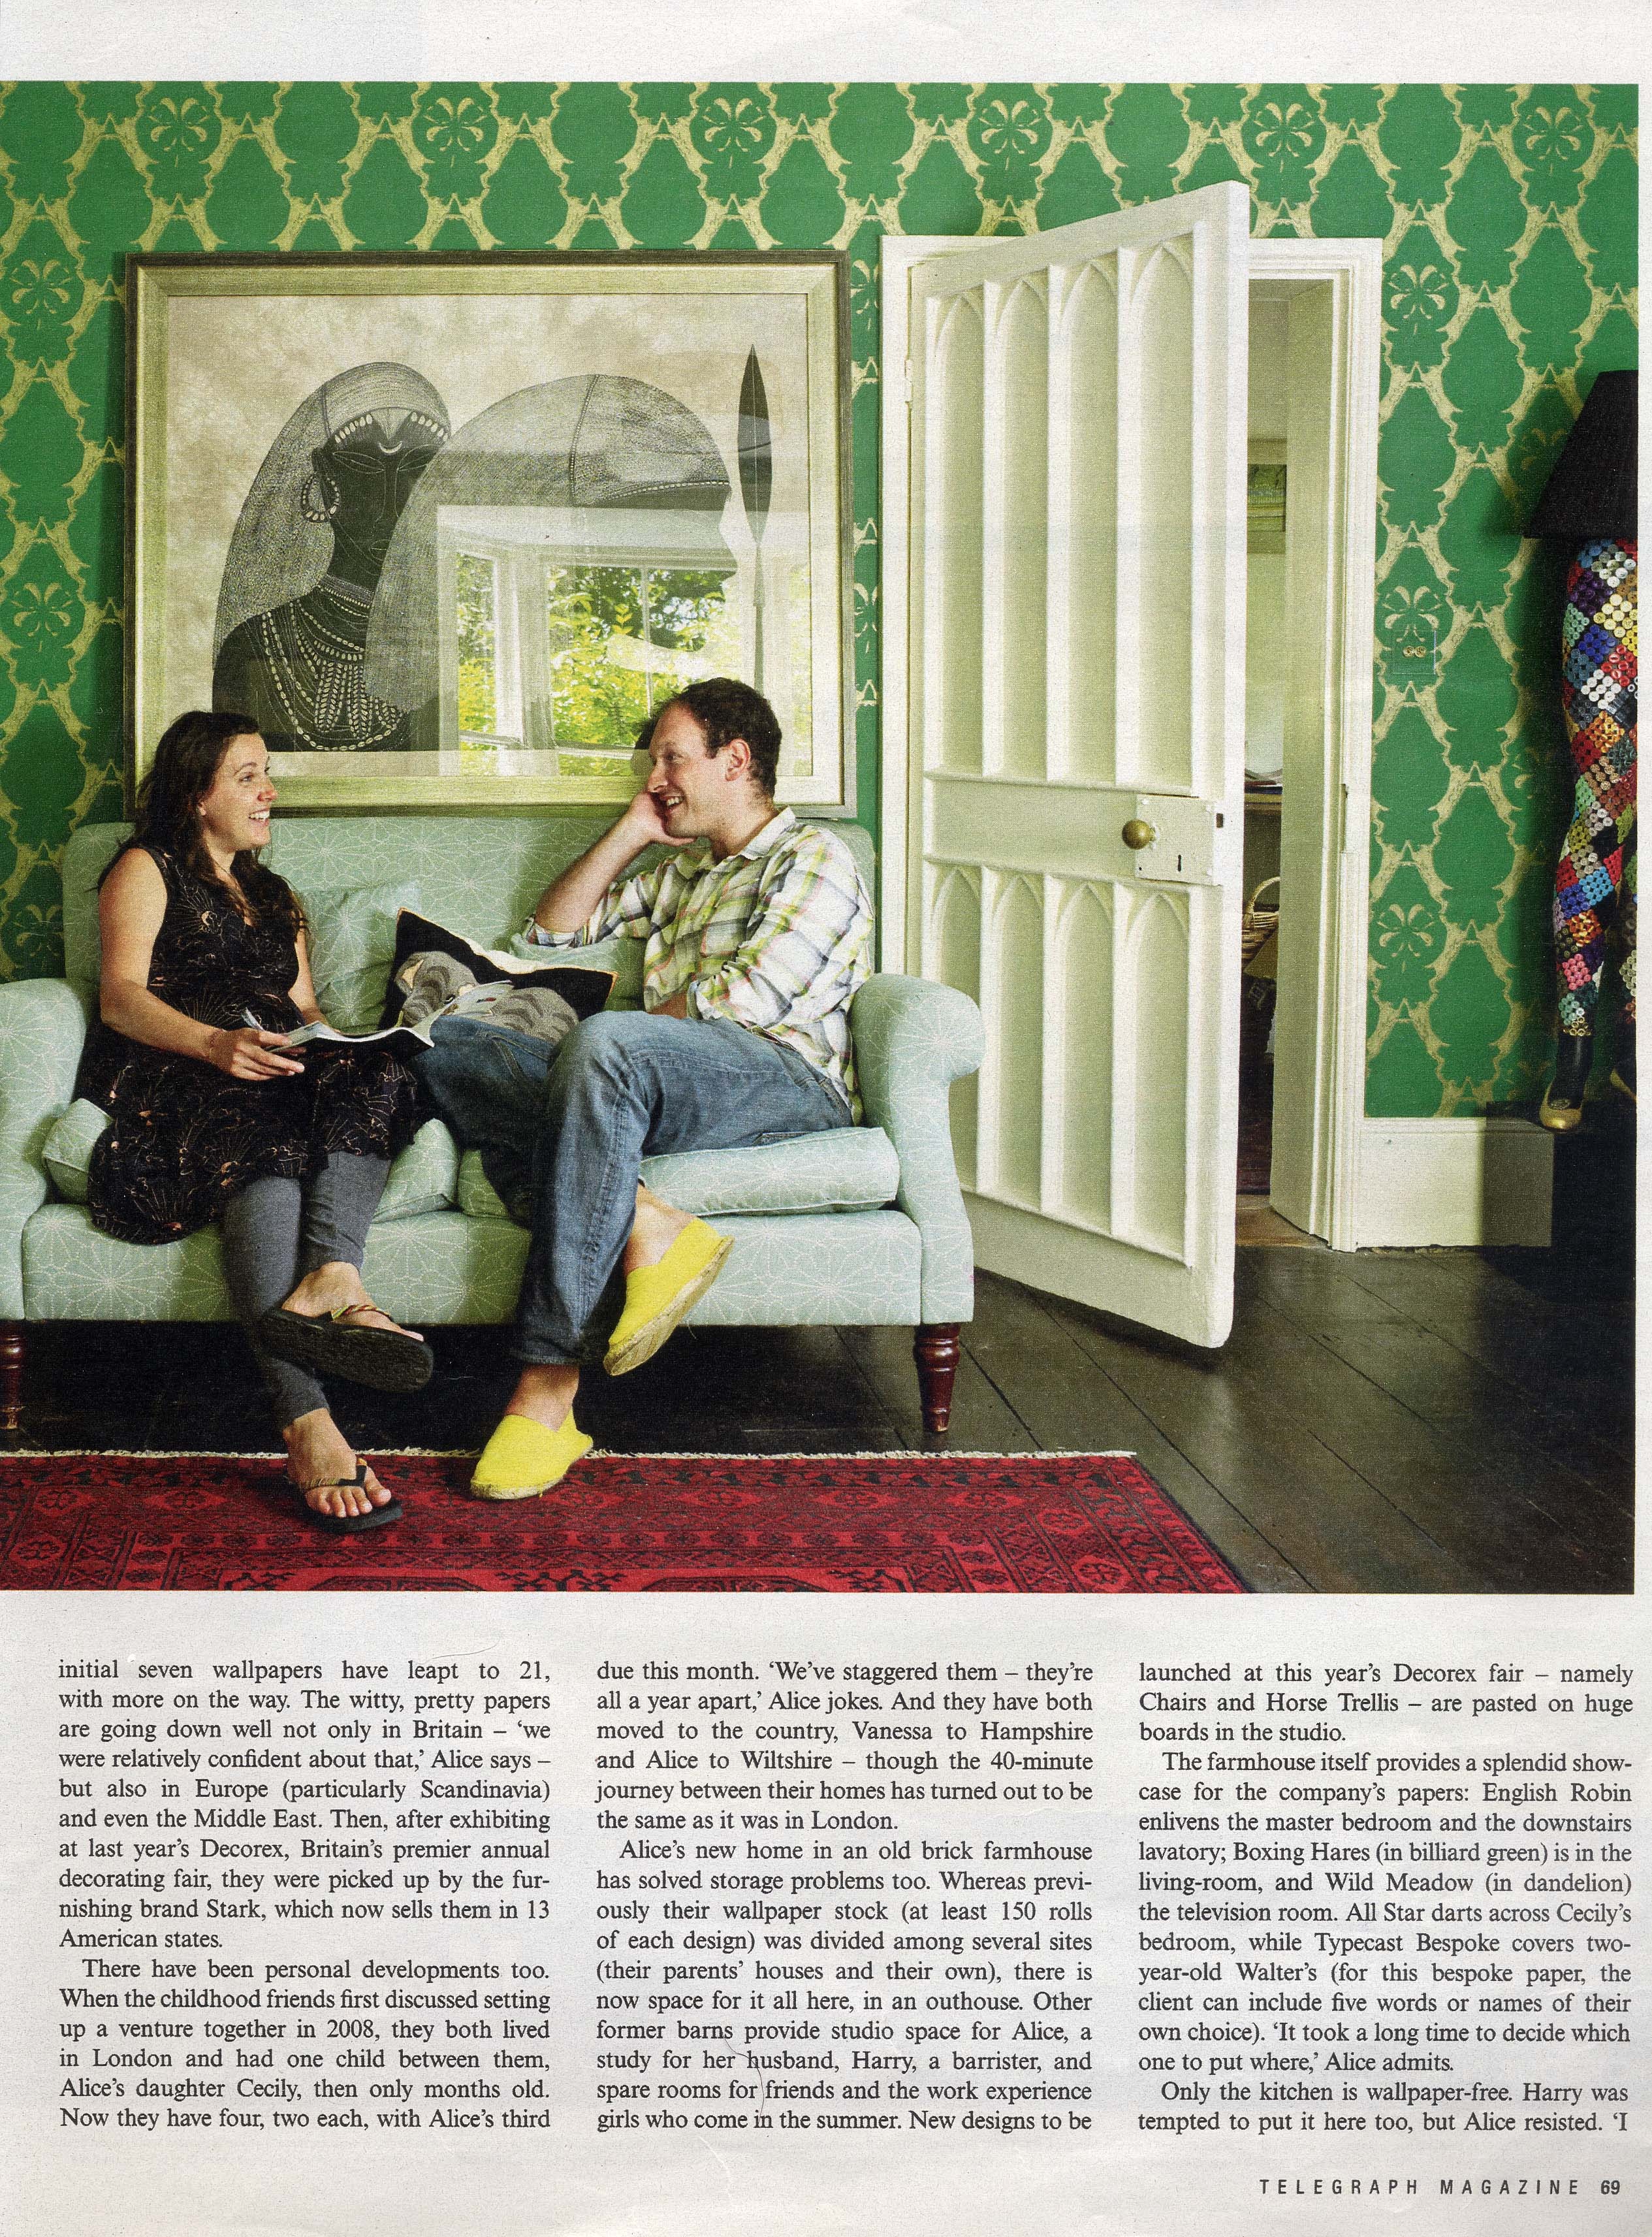 2011 Sept - Telegraph Magazine - page 3